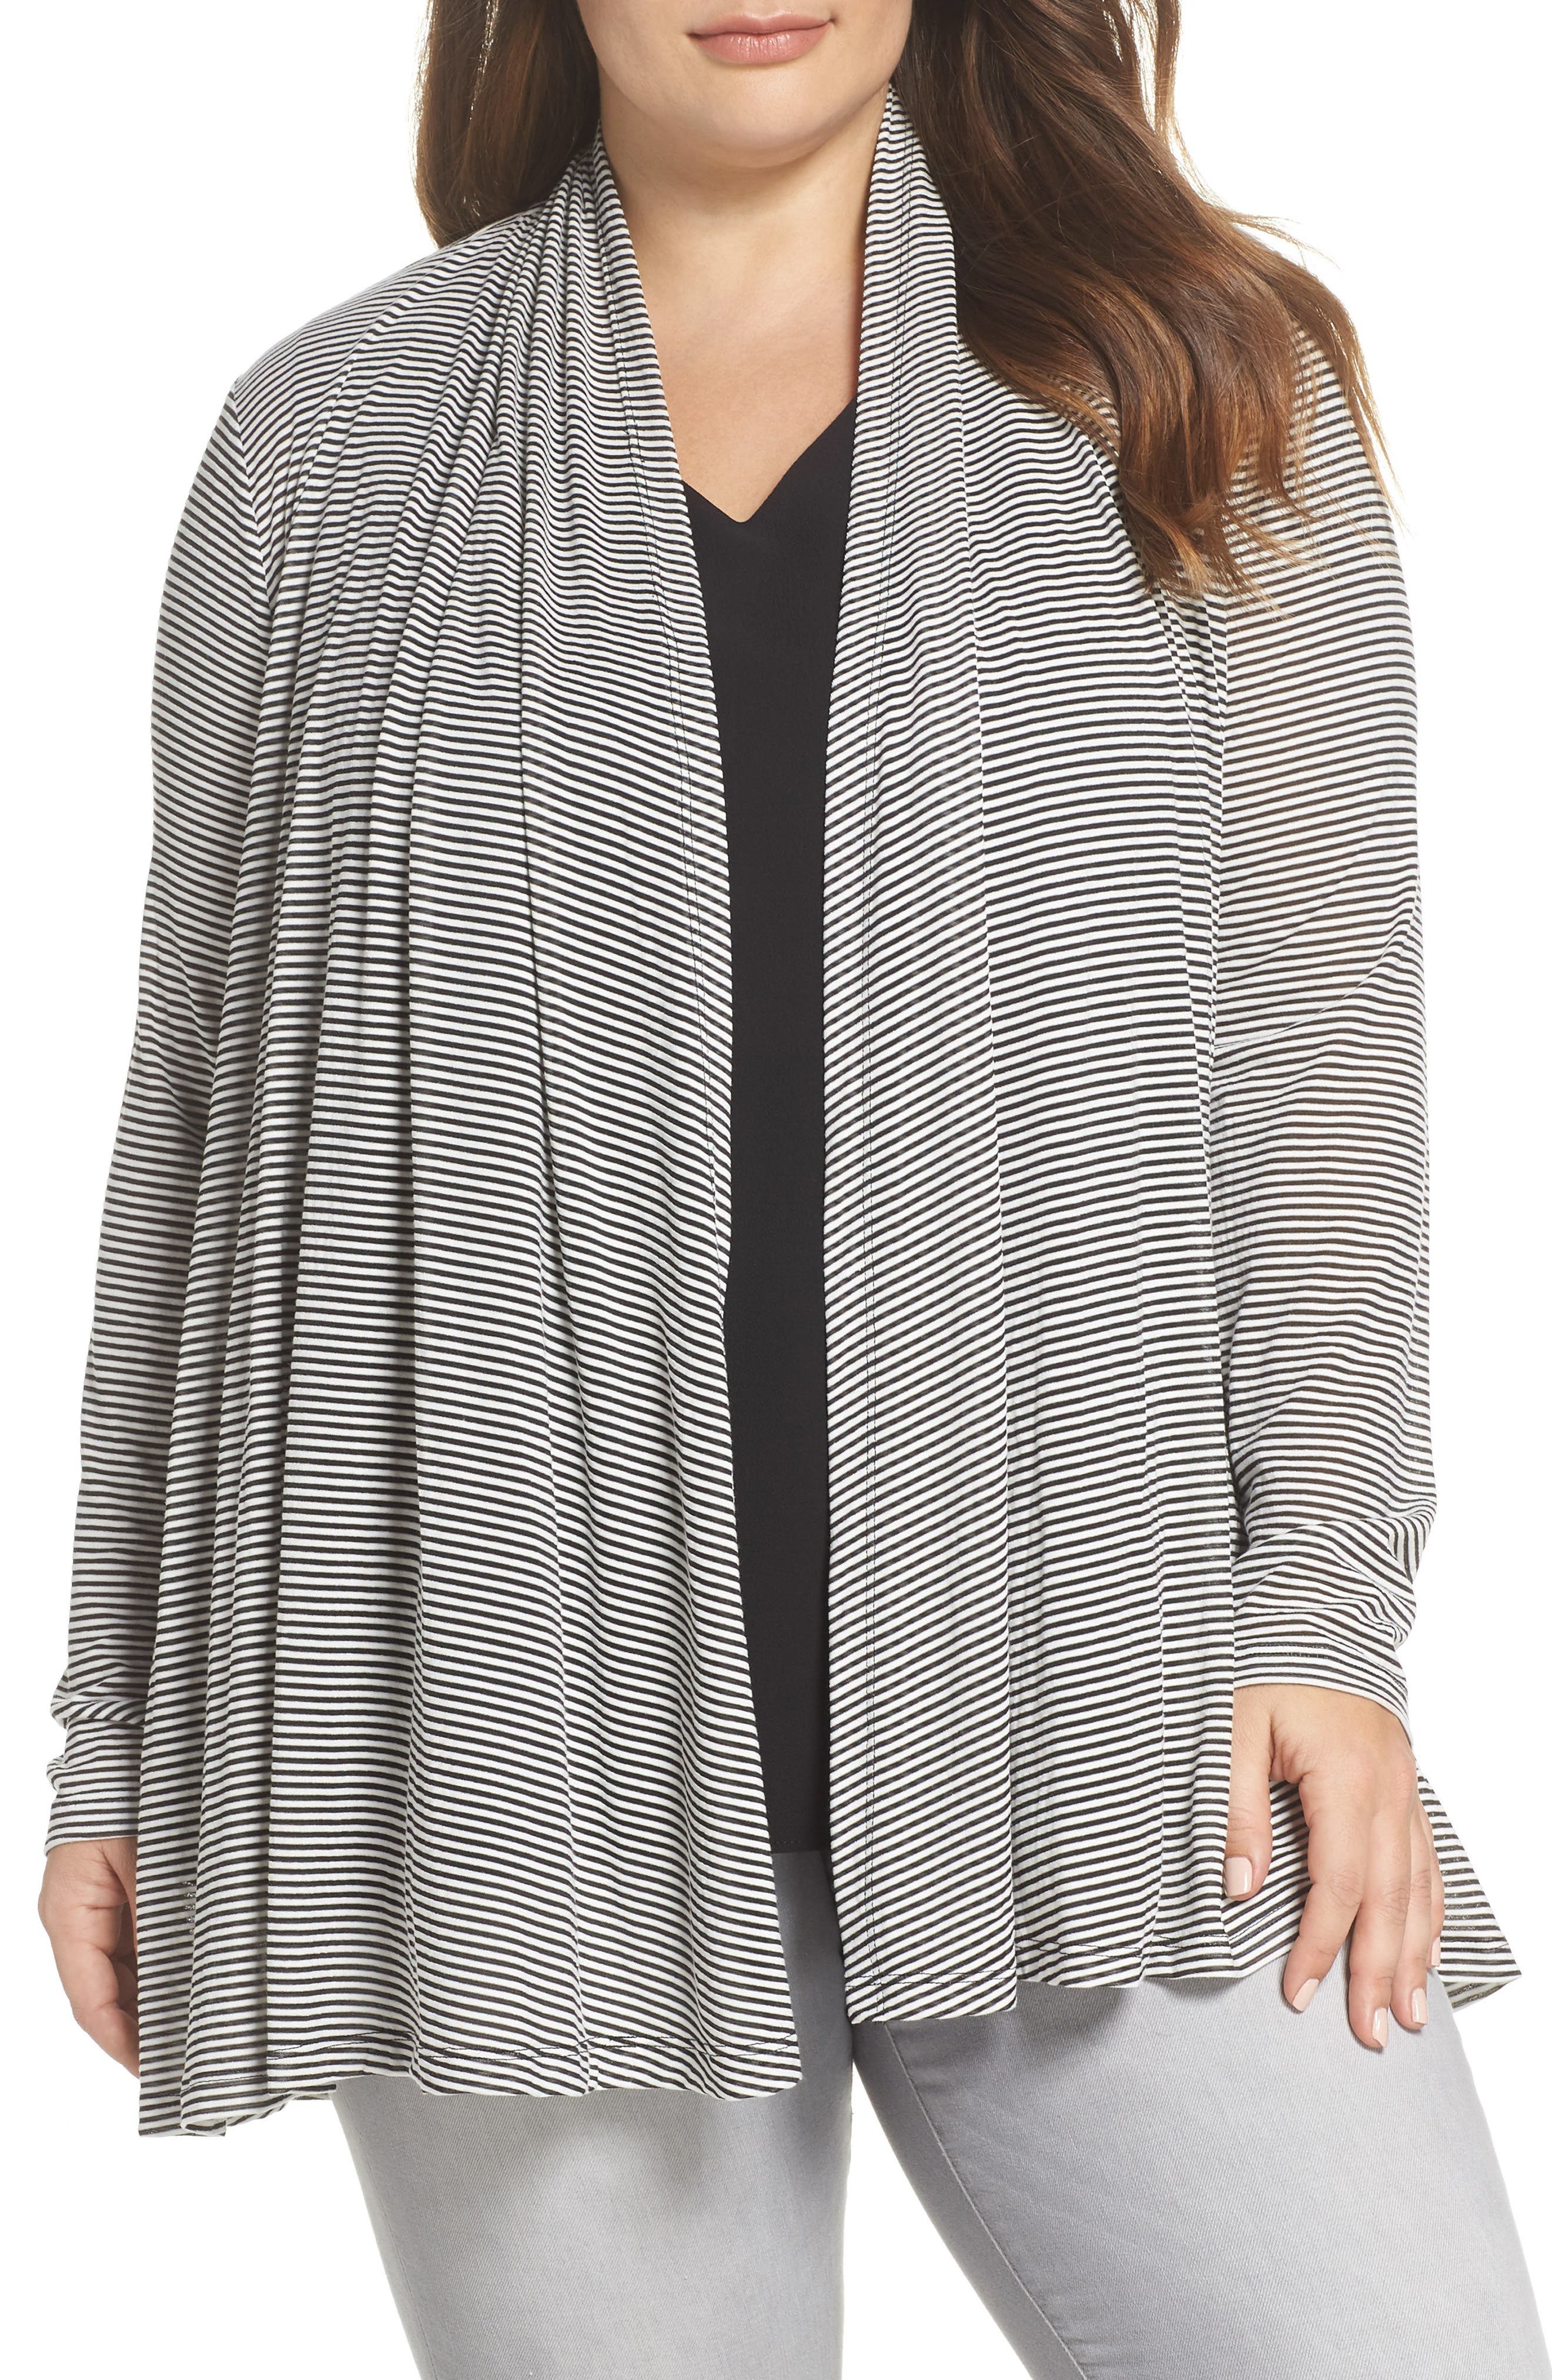 x Living in Yellow Claire Cardigan,                         Main,                         color, Black/ White Stripe